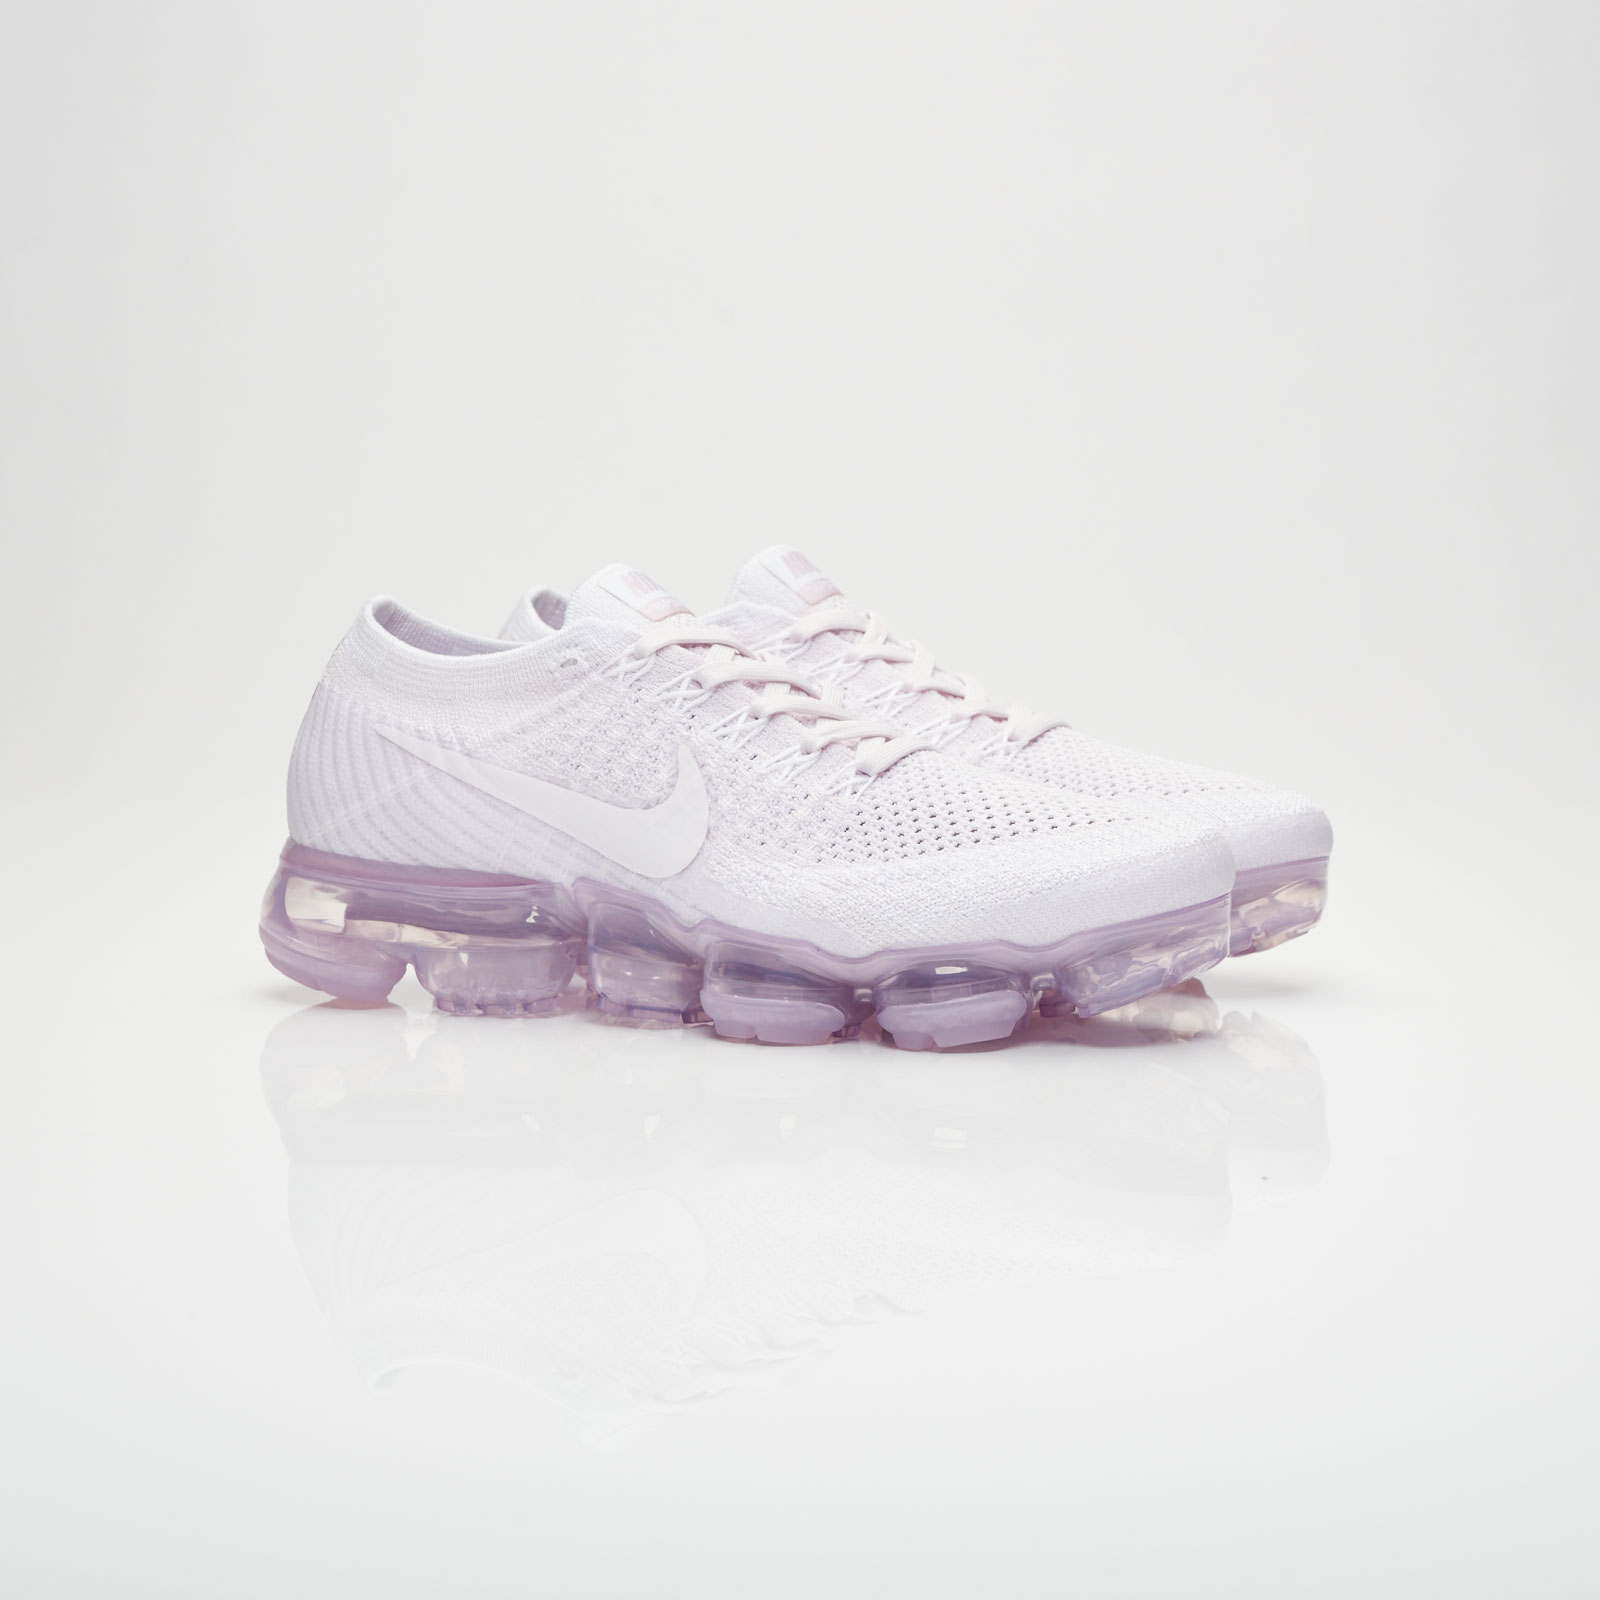 94feeec52a Good Out x 2018 849557 501 nike air vapormax flyknit running shoes ...